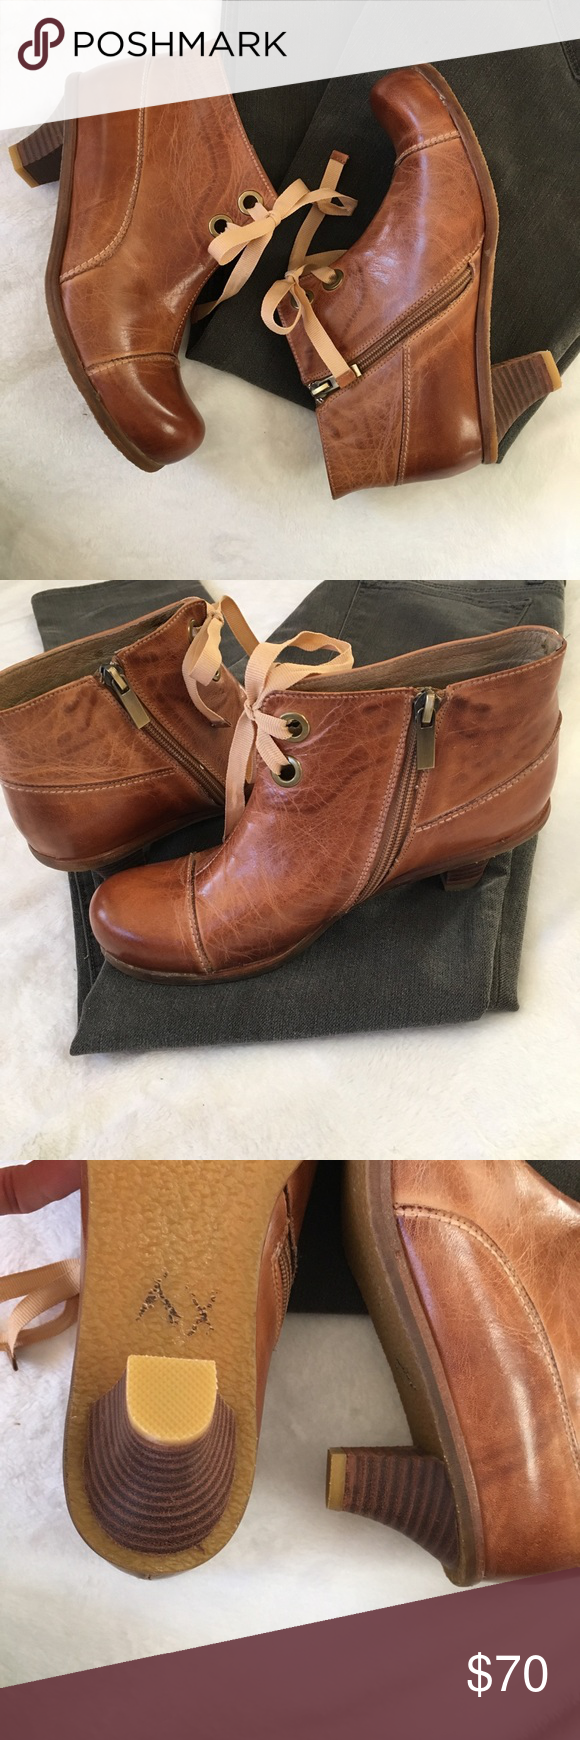 d3f650b34c4e 🆕Antelope lace up leather booties in cognac Gorgeous pair of vintage  inspired heeled brown leather